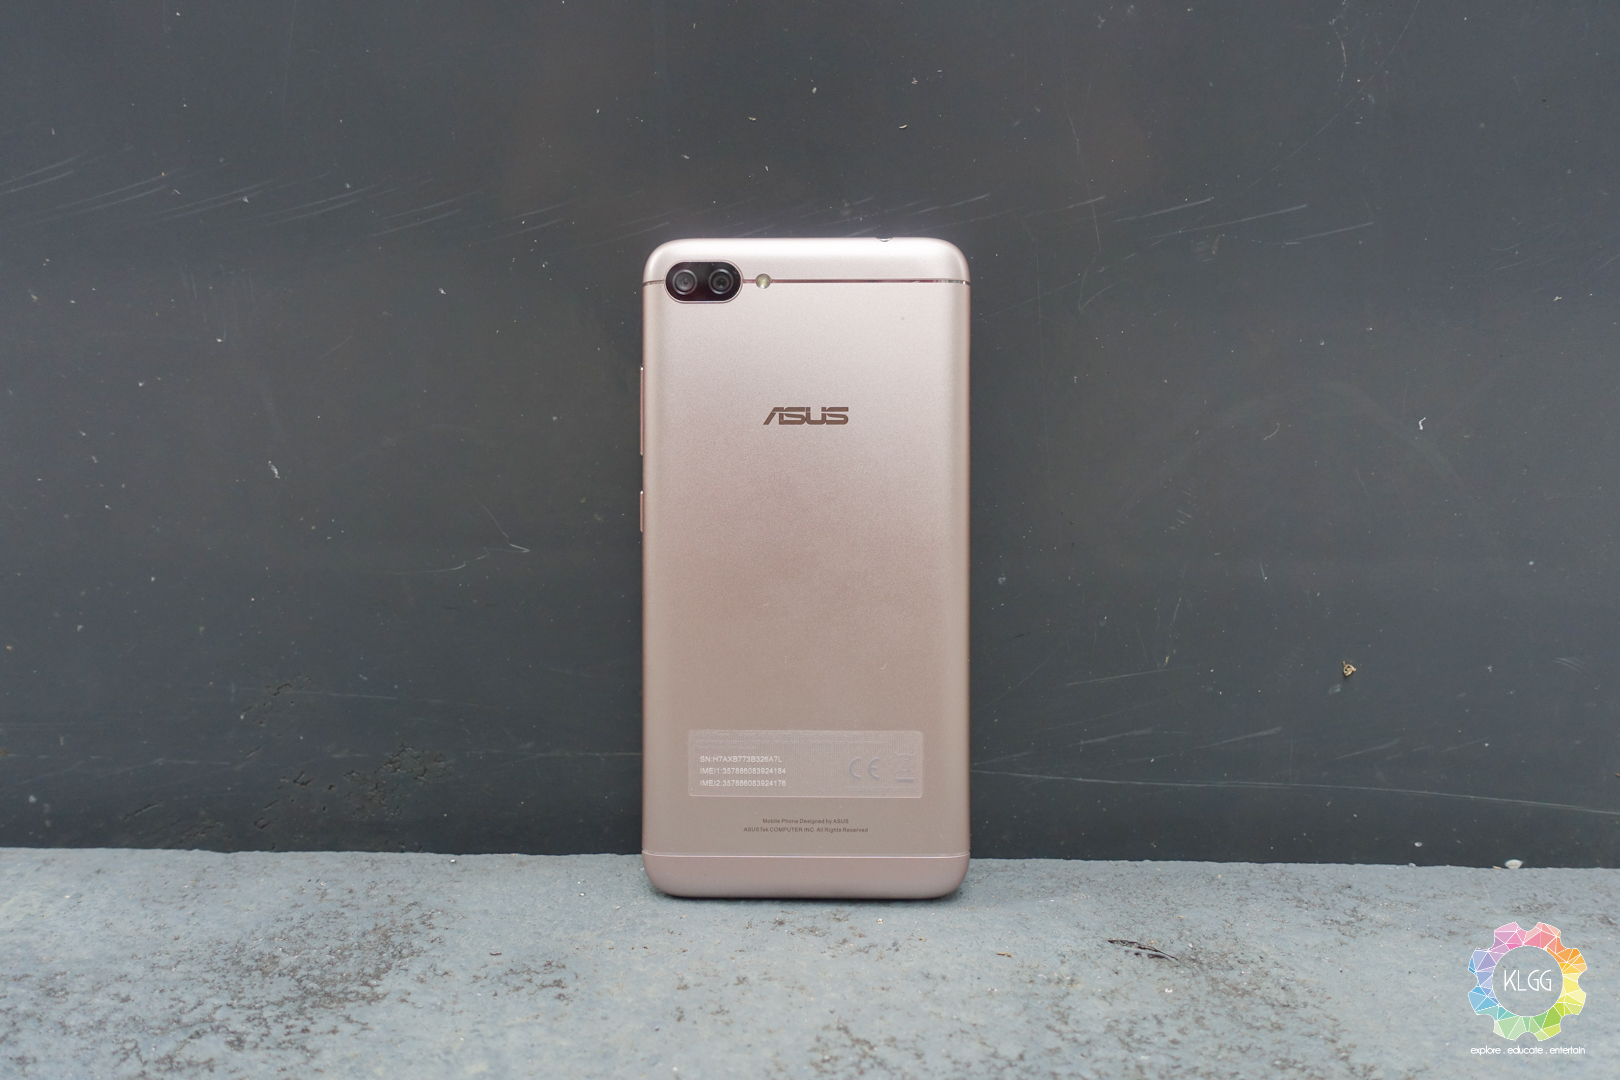 Asus zenfone 4 max pro review insane battery life made affordable theres stopboris Image collections